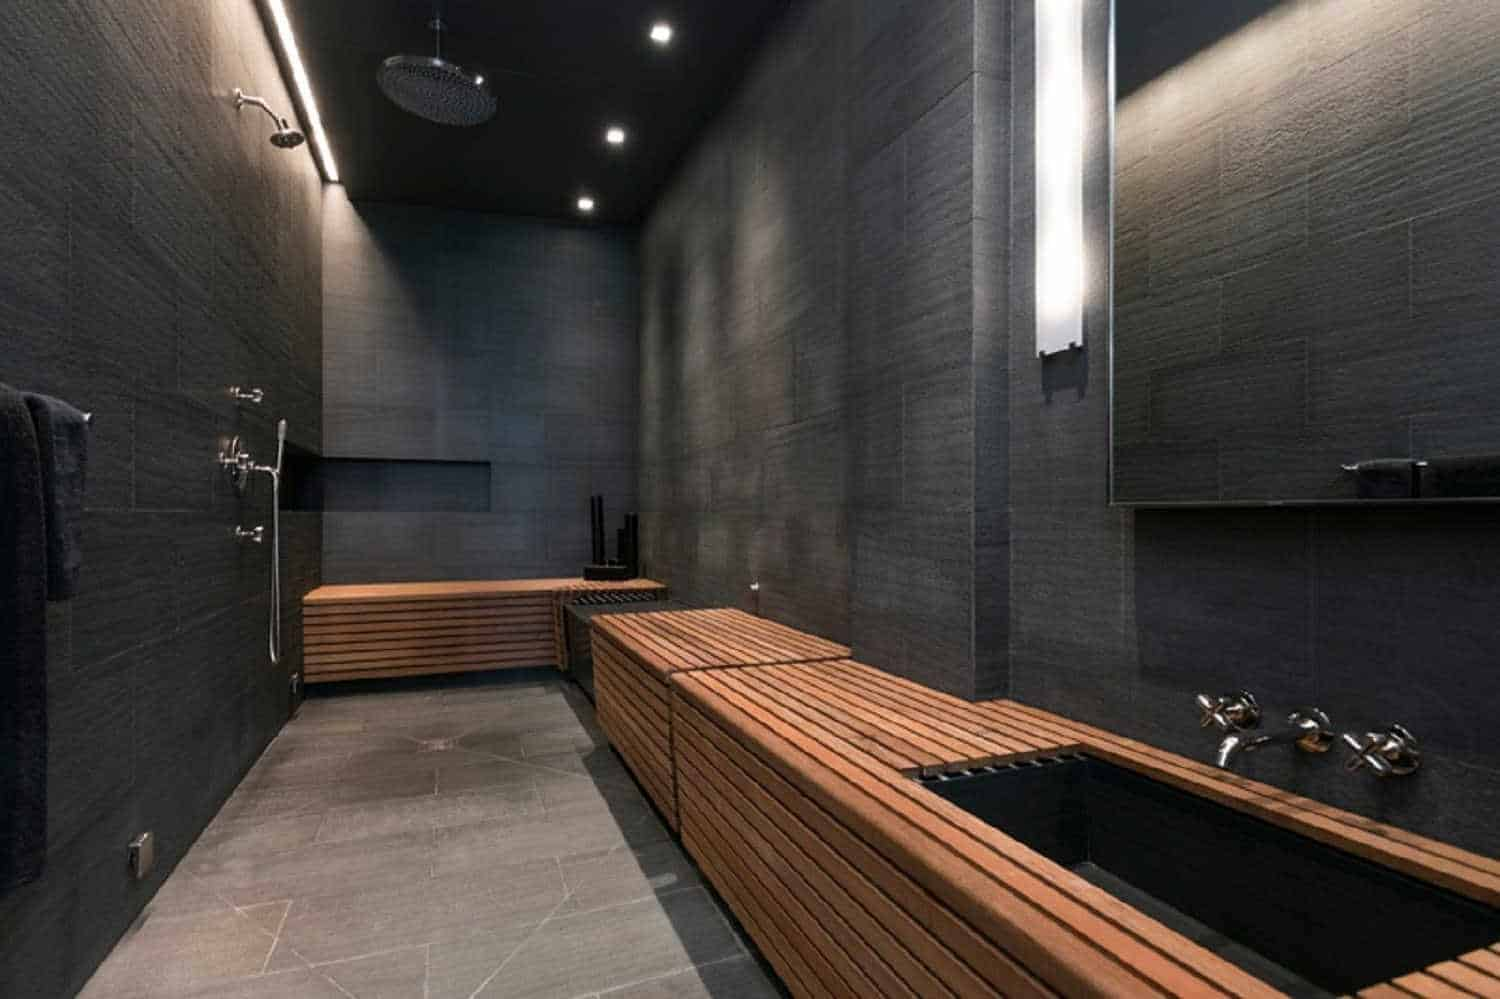 Primary bathroom with a black and brown color scheme. It has an open shower and a sink counter, along with a small soaking tub.